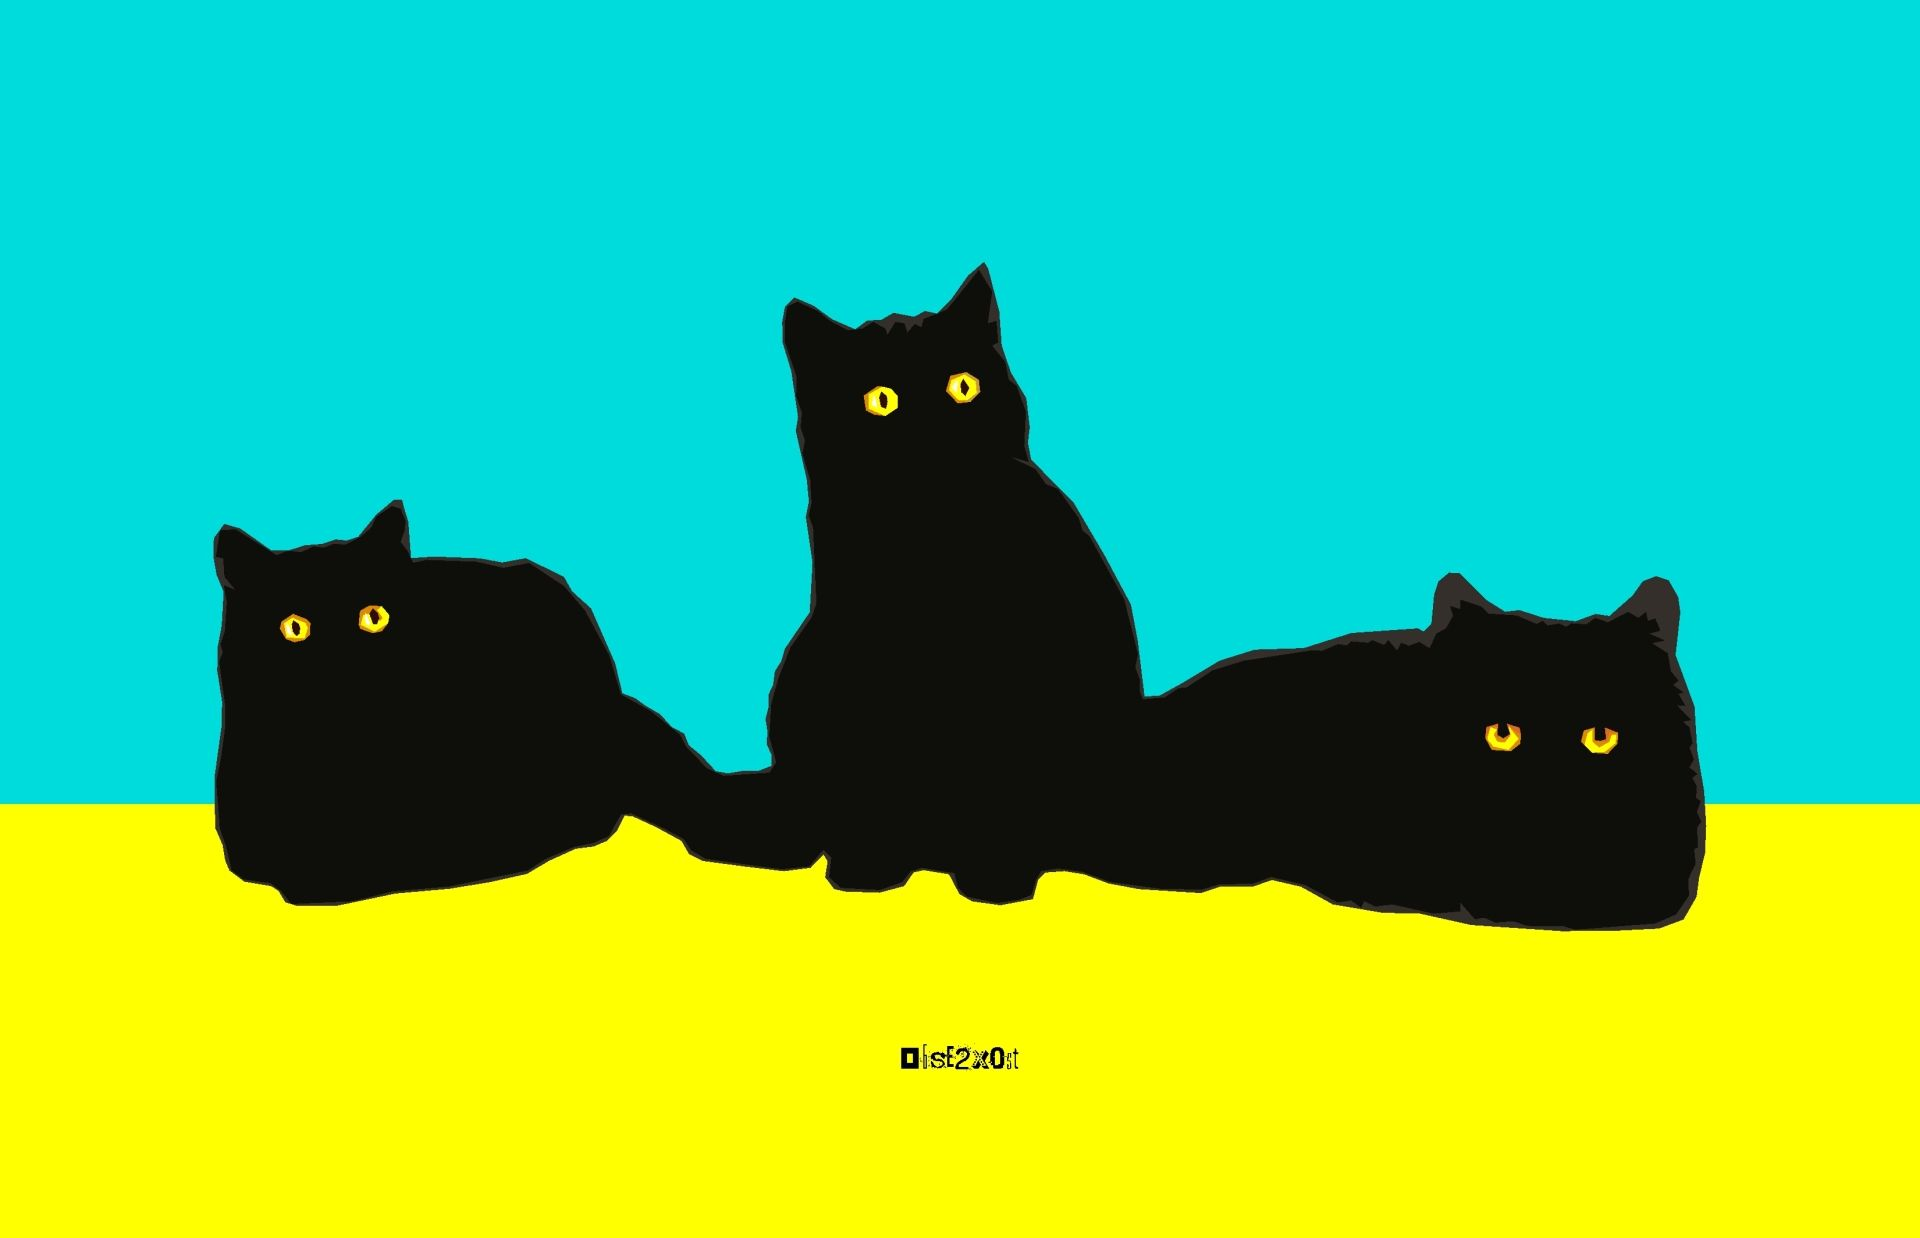 Computer Graphic Art Print Image File Of Three Black Cats In Minimal Geometric Style Black Cat Art Background Images Wallpapers Cat Art